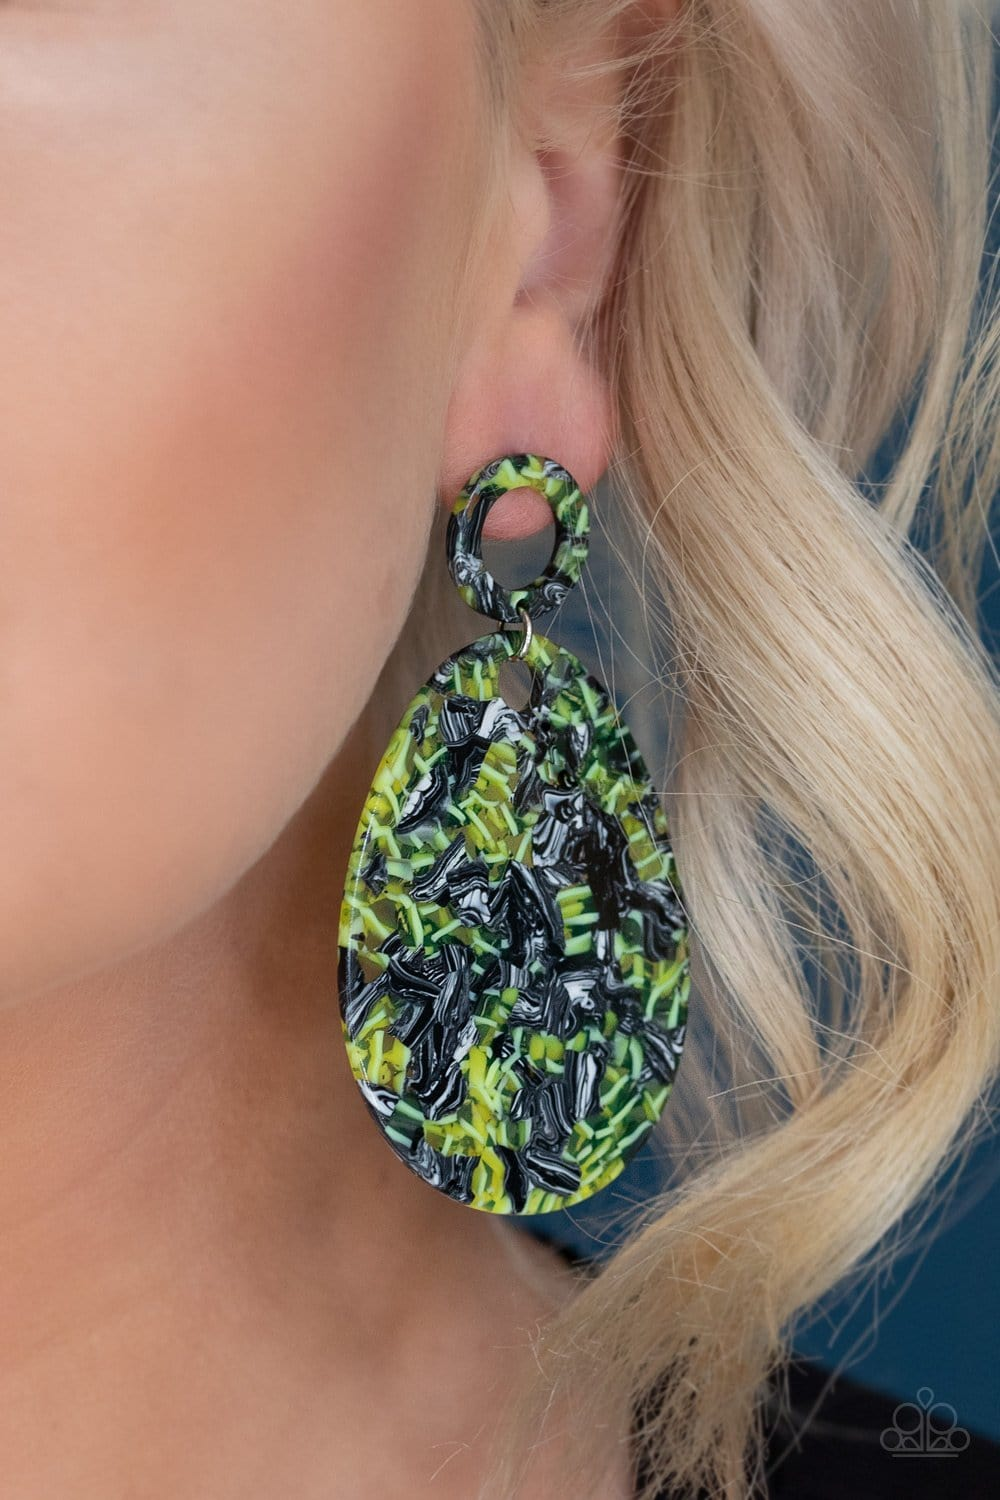 Retro-politan- Multi Acrylic Earrings: Paparazzi - Jewels N' Thingz Boutique